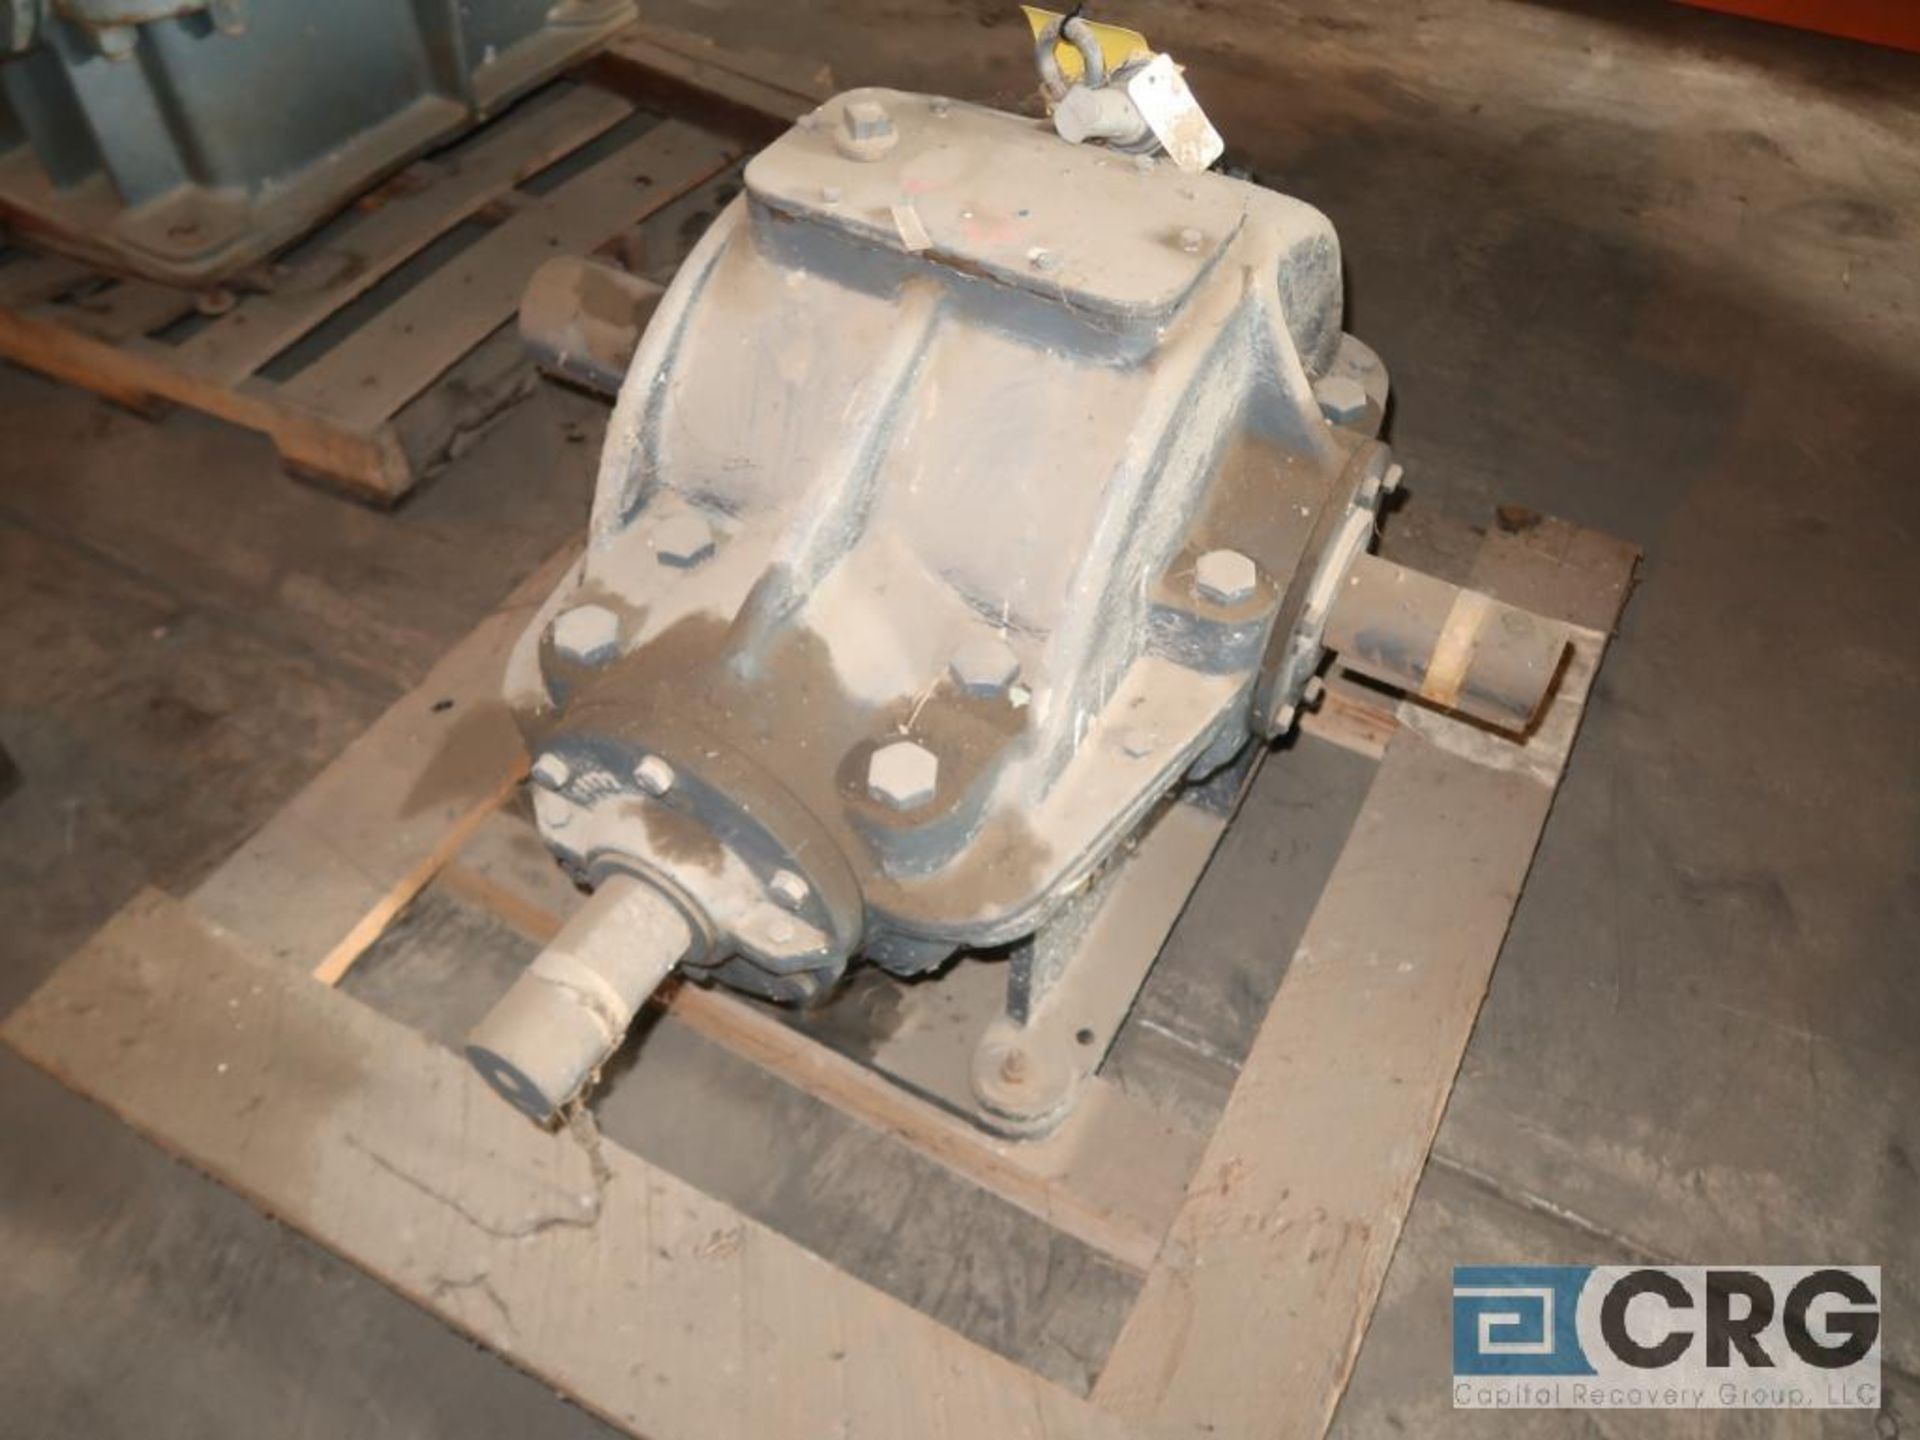 Falk 7GHB gear drive, ratio-1.905, input RPM 527.6, output RPM 277, service rate HP. 49, s/n 6682901 - Image 2 of 3